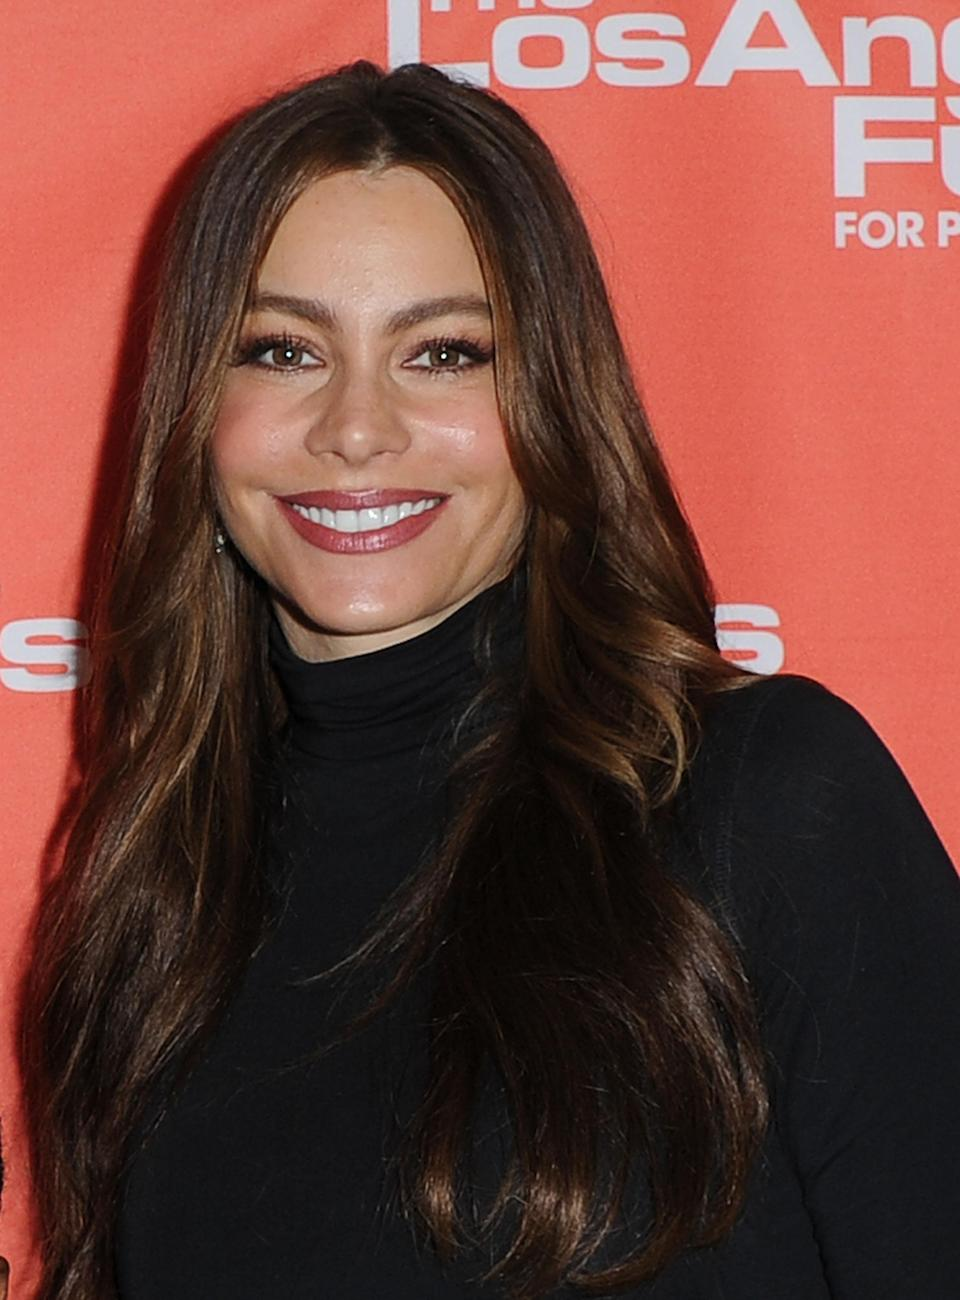 FILE - In this March 29, 2012 file photo, Sofia Vergara poses for pictures at the announcement of Food for Thought at Figueroa Elementary School, in Los Angeles. Five stars of the hit ABC series sued 20th Century Fox Television on Tuesday July 24, 2012, claiming their contracts with the studio are illegal under California law and should be invalidated. (AP Photo/Katy Winn, File)